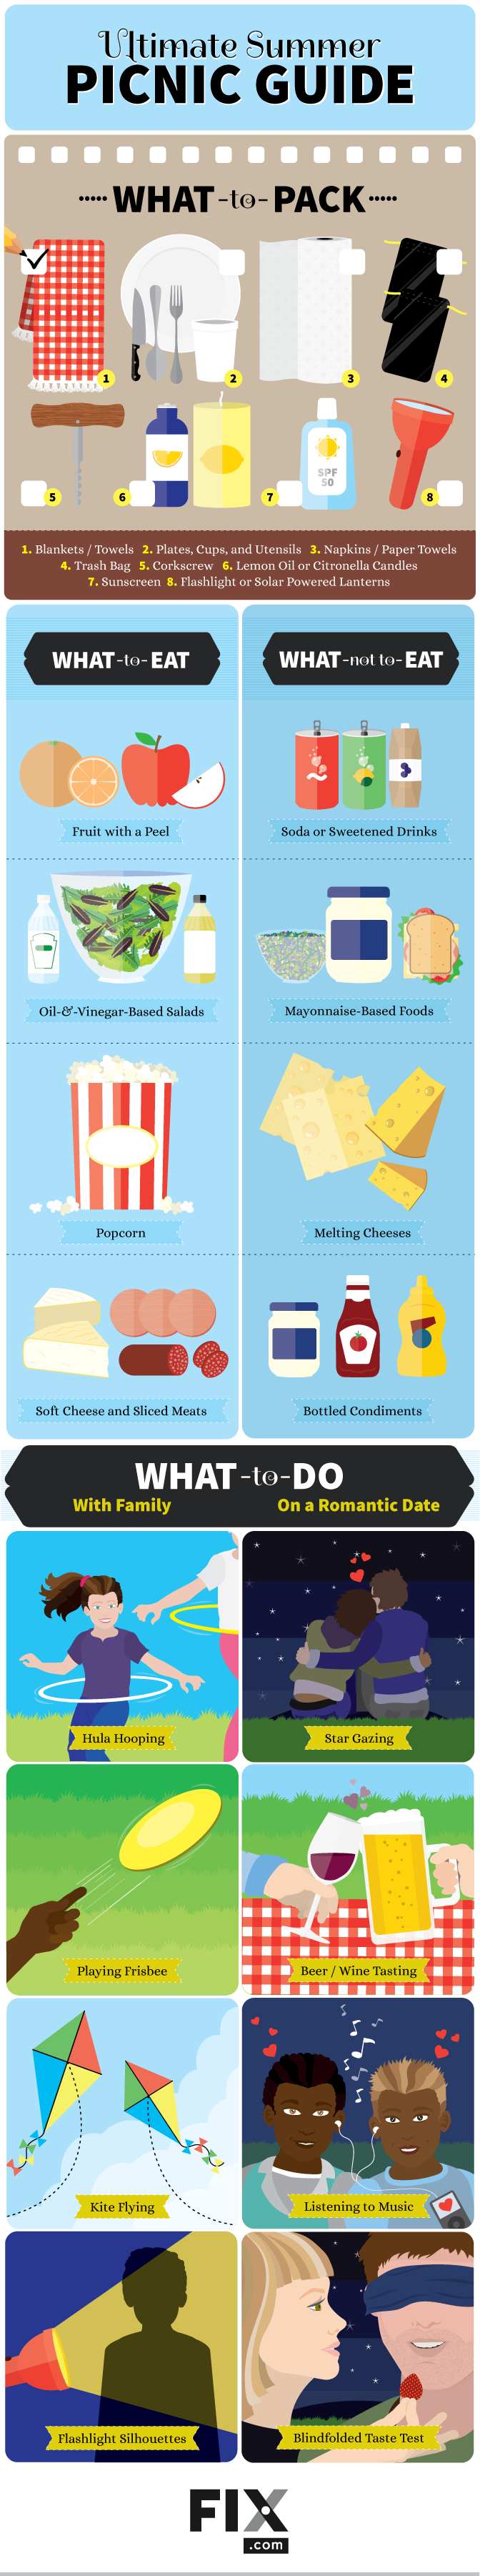 The Ultimate Summer Picnic Guide #infographic